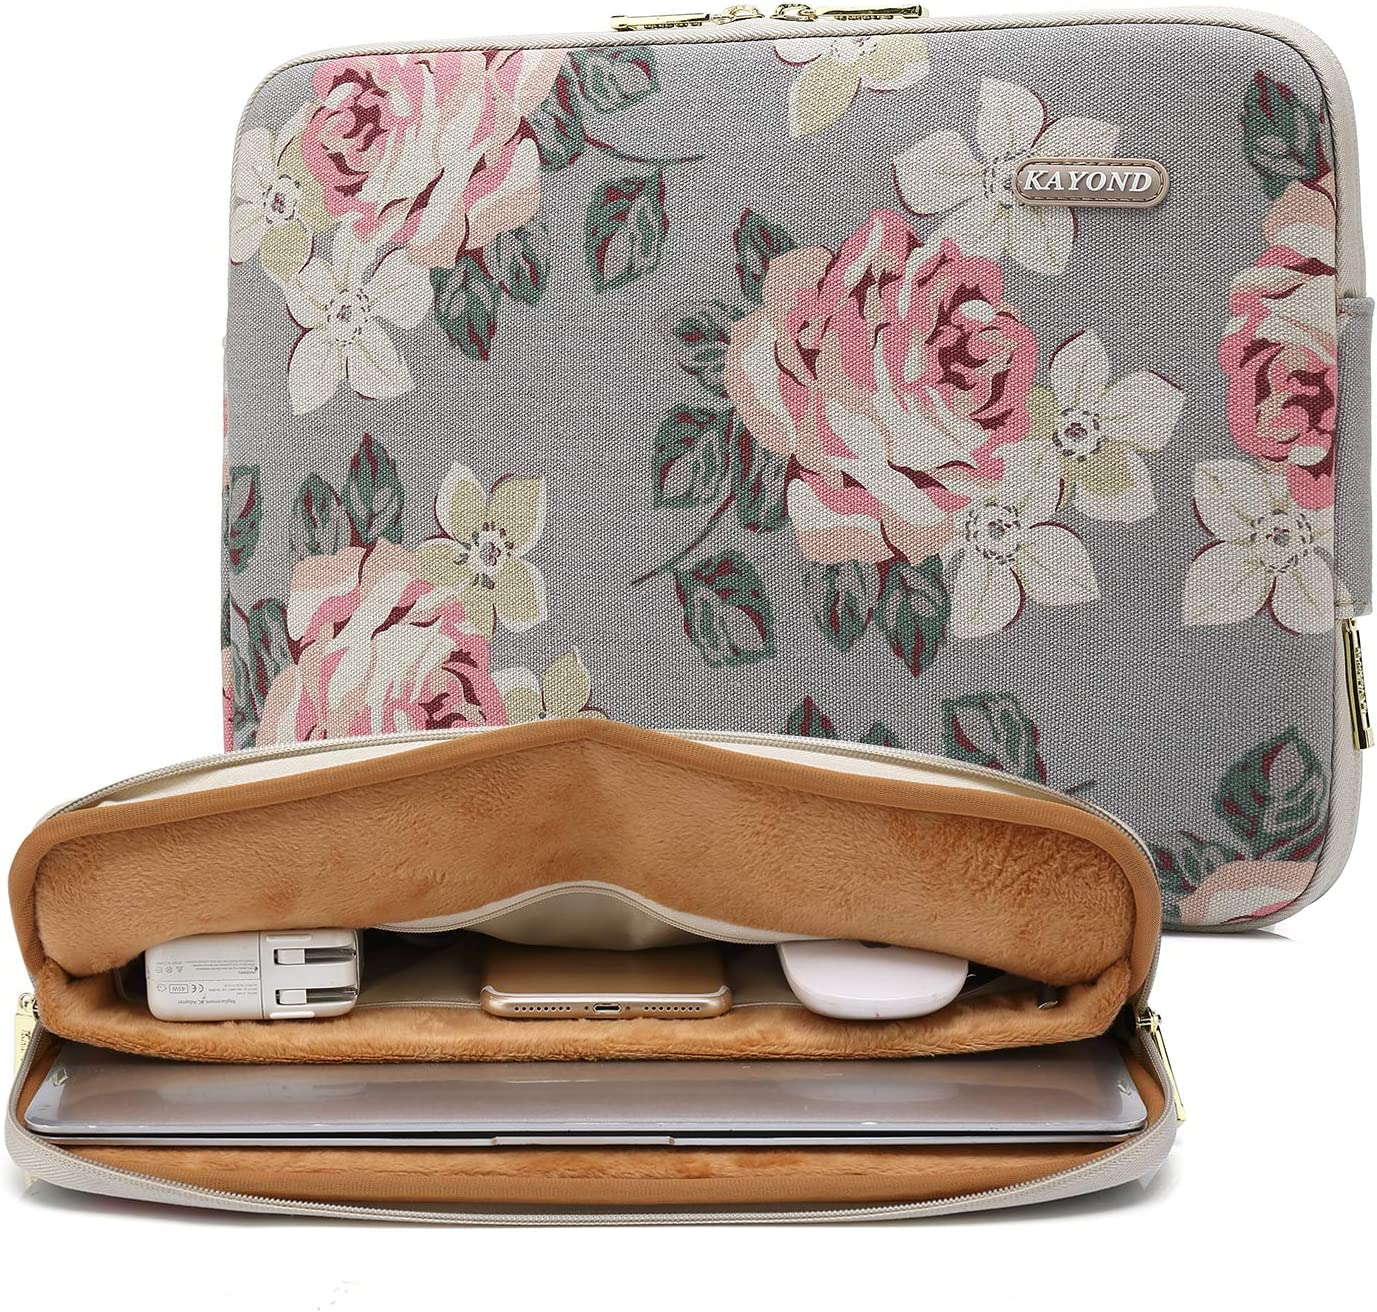 kayond Water-Resistant Canvas 17 Inch Laptop Sleeve-White Rose